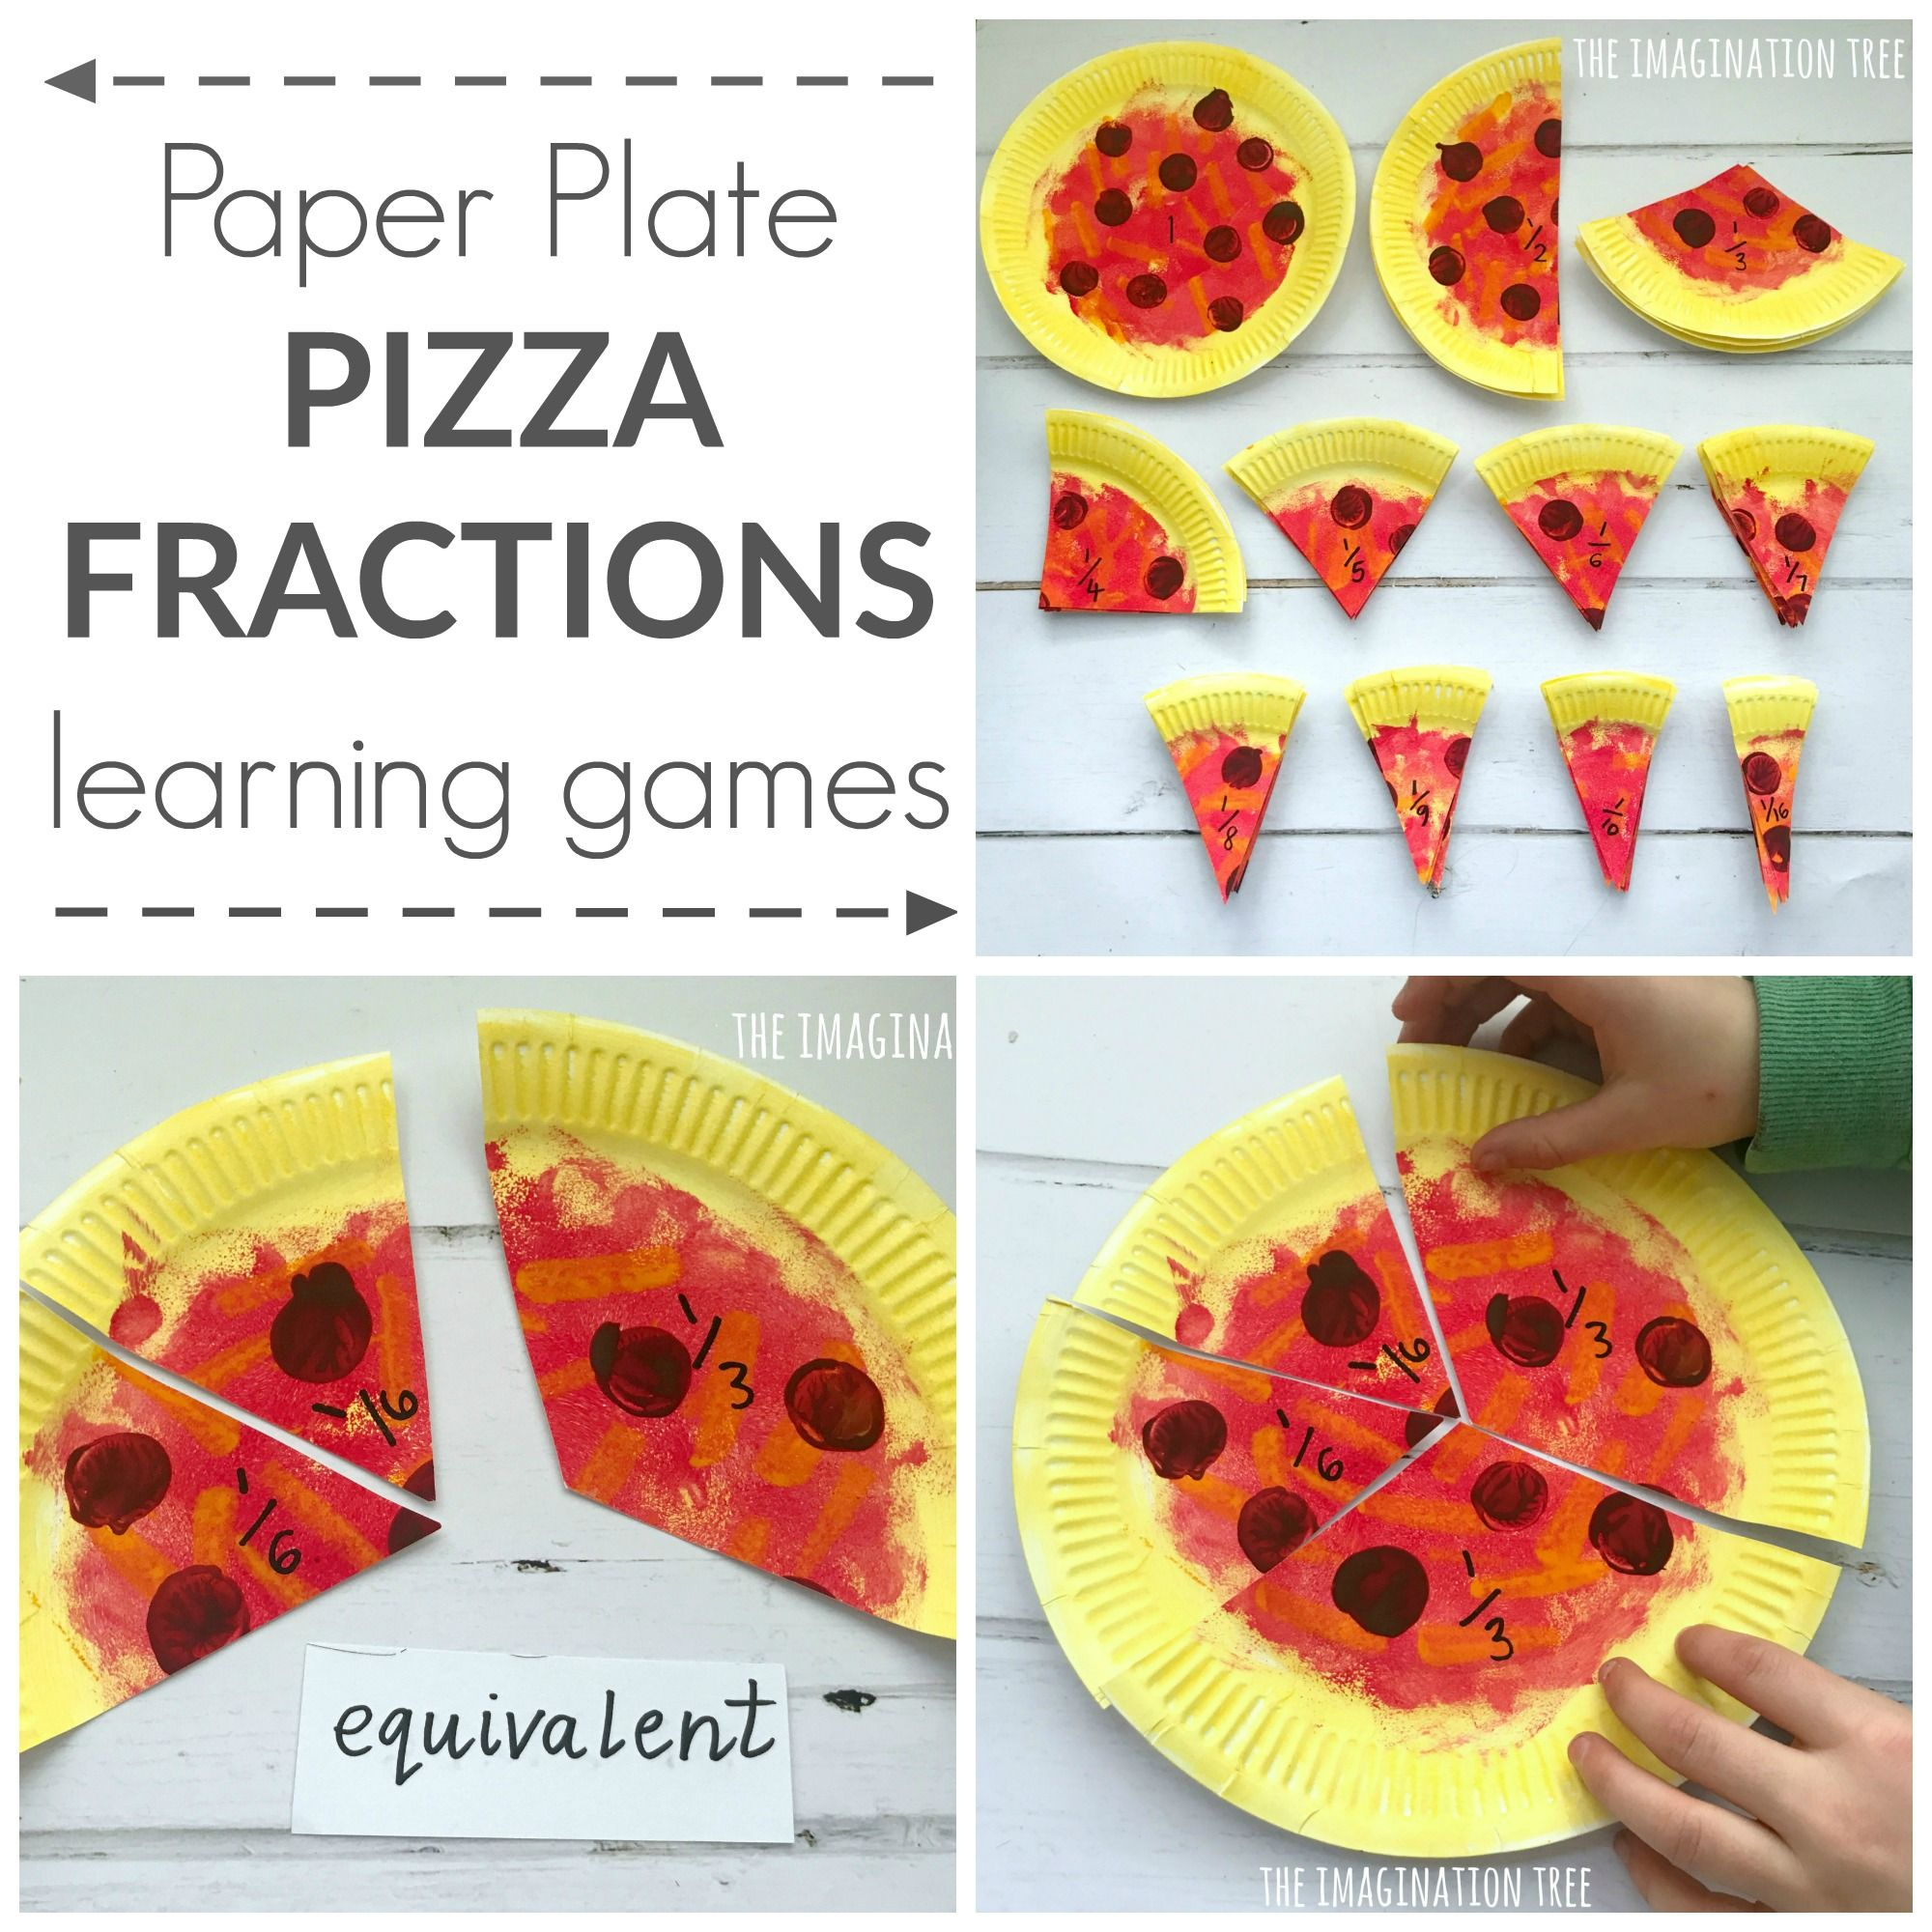 Paper Plate Pizza Fractions